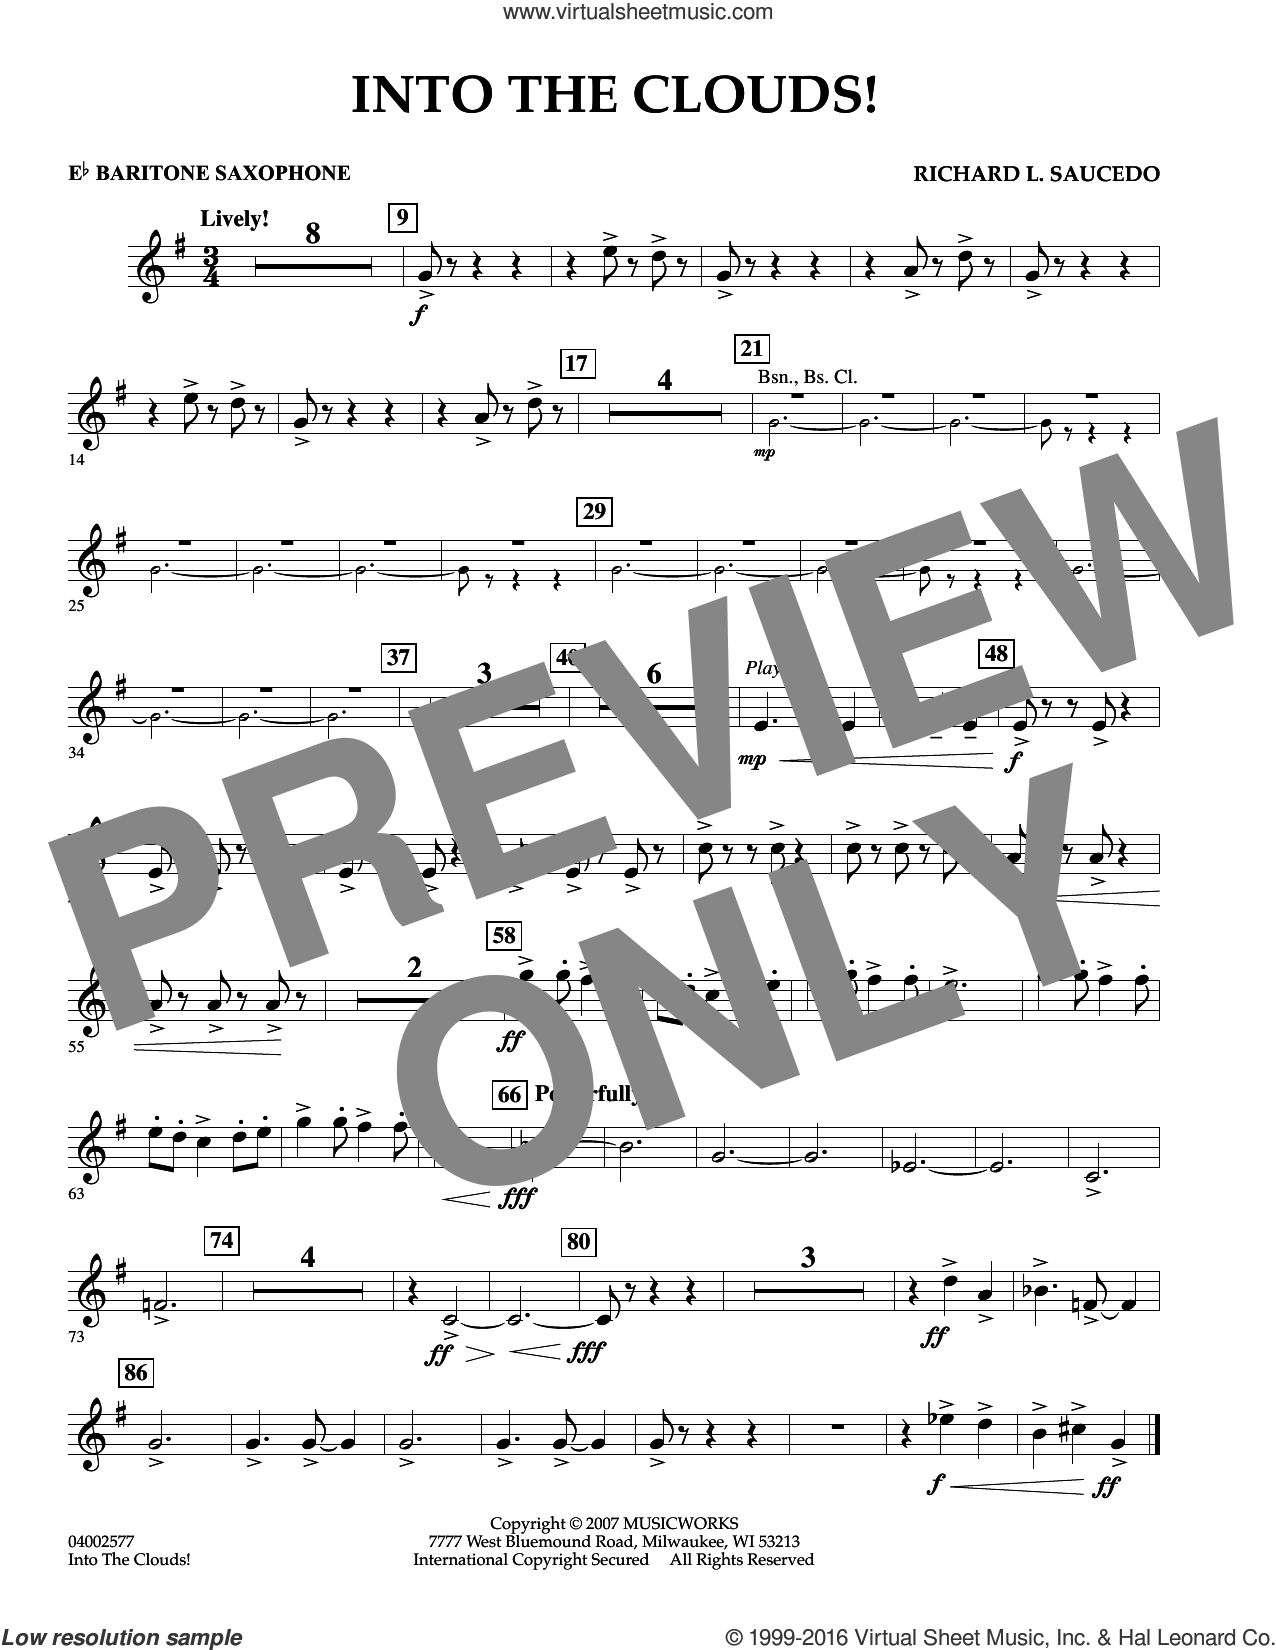 Into The Clouds!  W/cd sheet music for concert band (Eb baritone saxophone) by Richard L. Saucedo, intermediate skill level